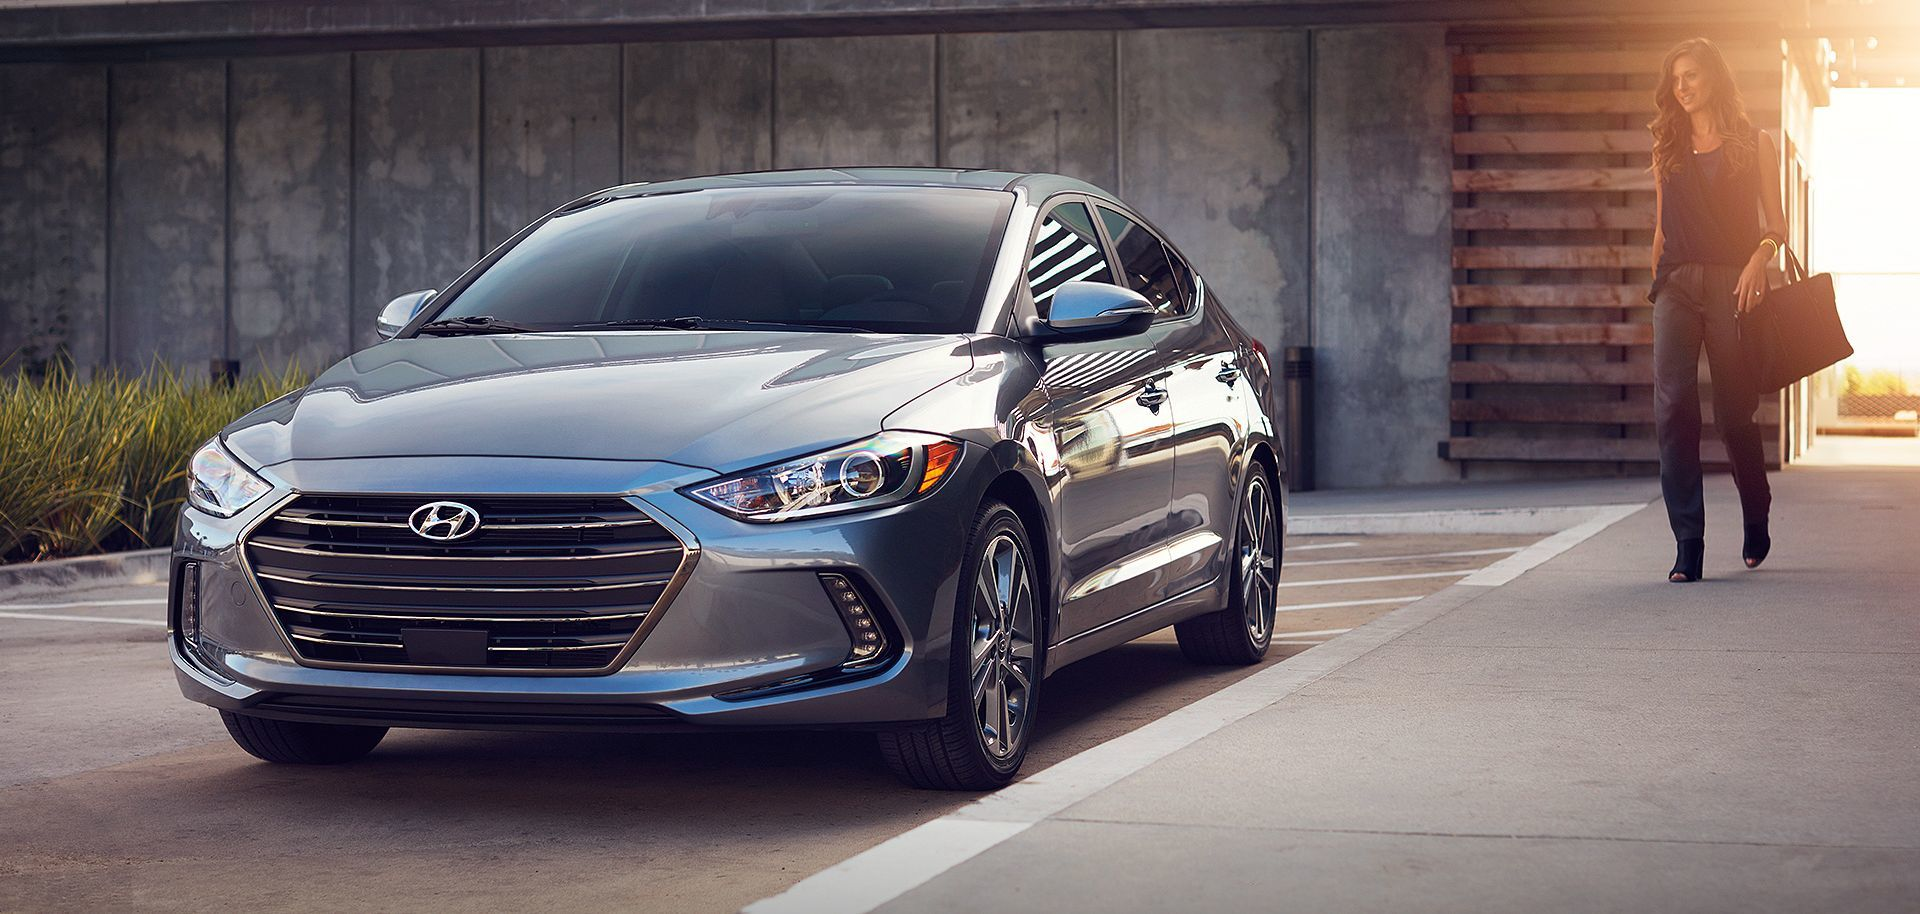 2017 hyundai elantra limited for sale near bowie md pohanka hyundai of capitol heights. Black Bedroom Furniture Sets. Home Design Ideas